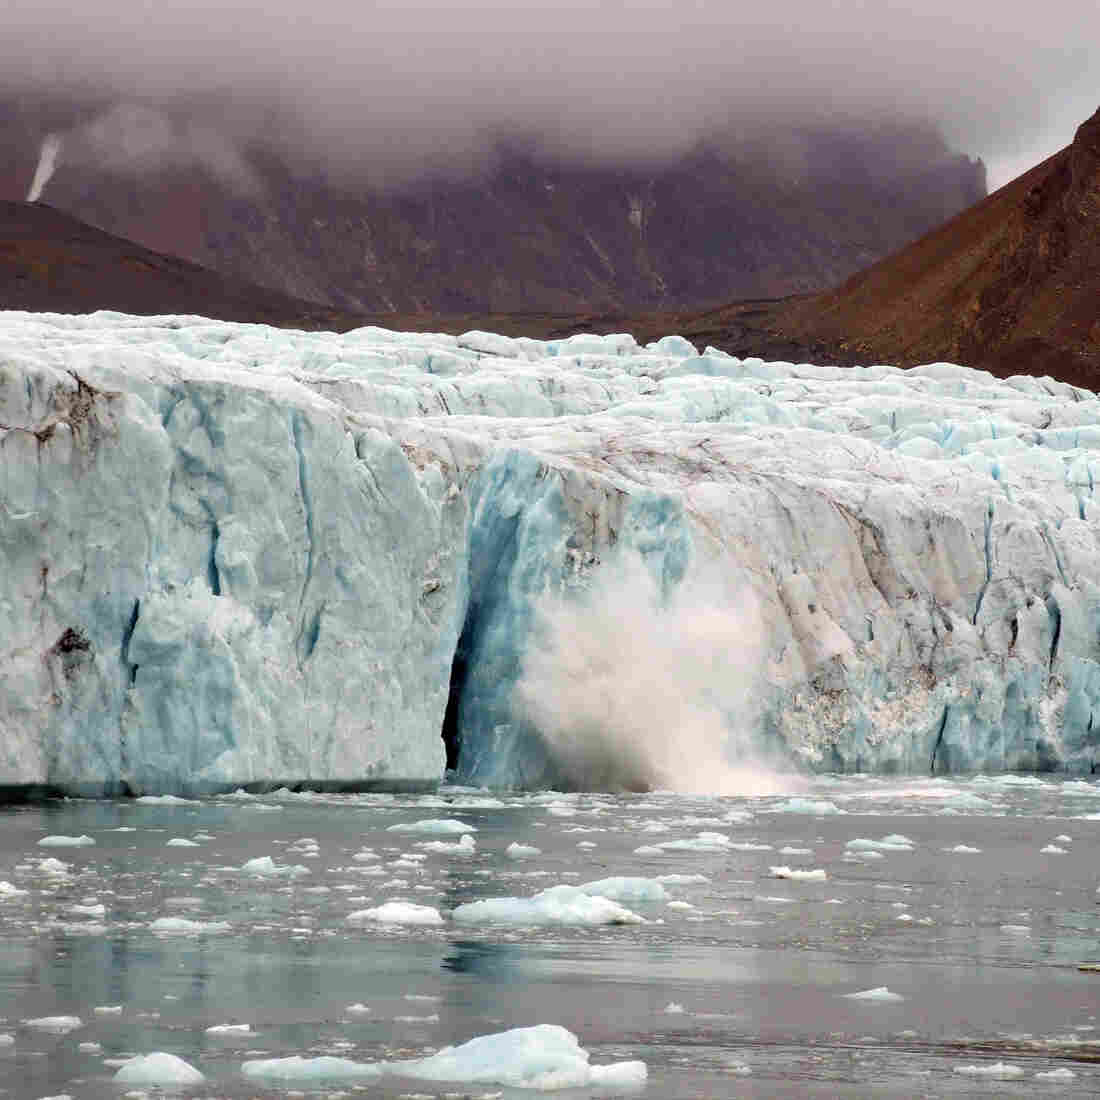 Giant chunks of ice break away from the Hans Glacier in Svalbard, Norway, in 2013.